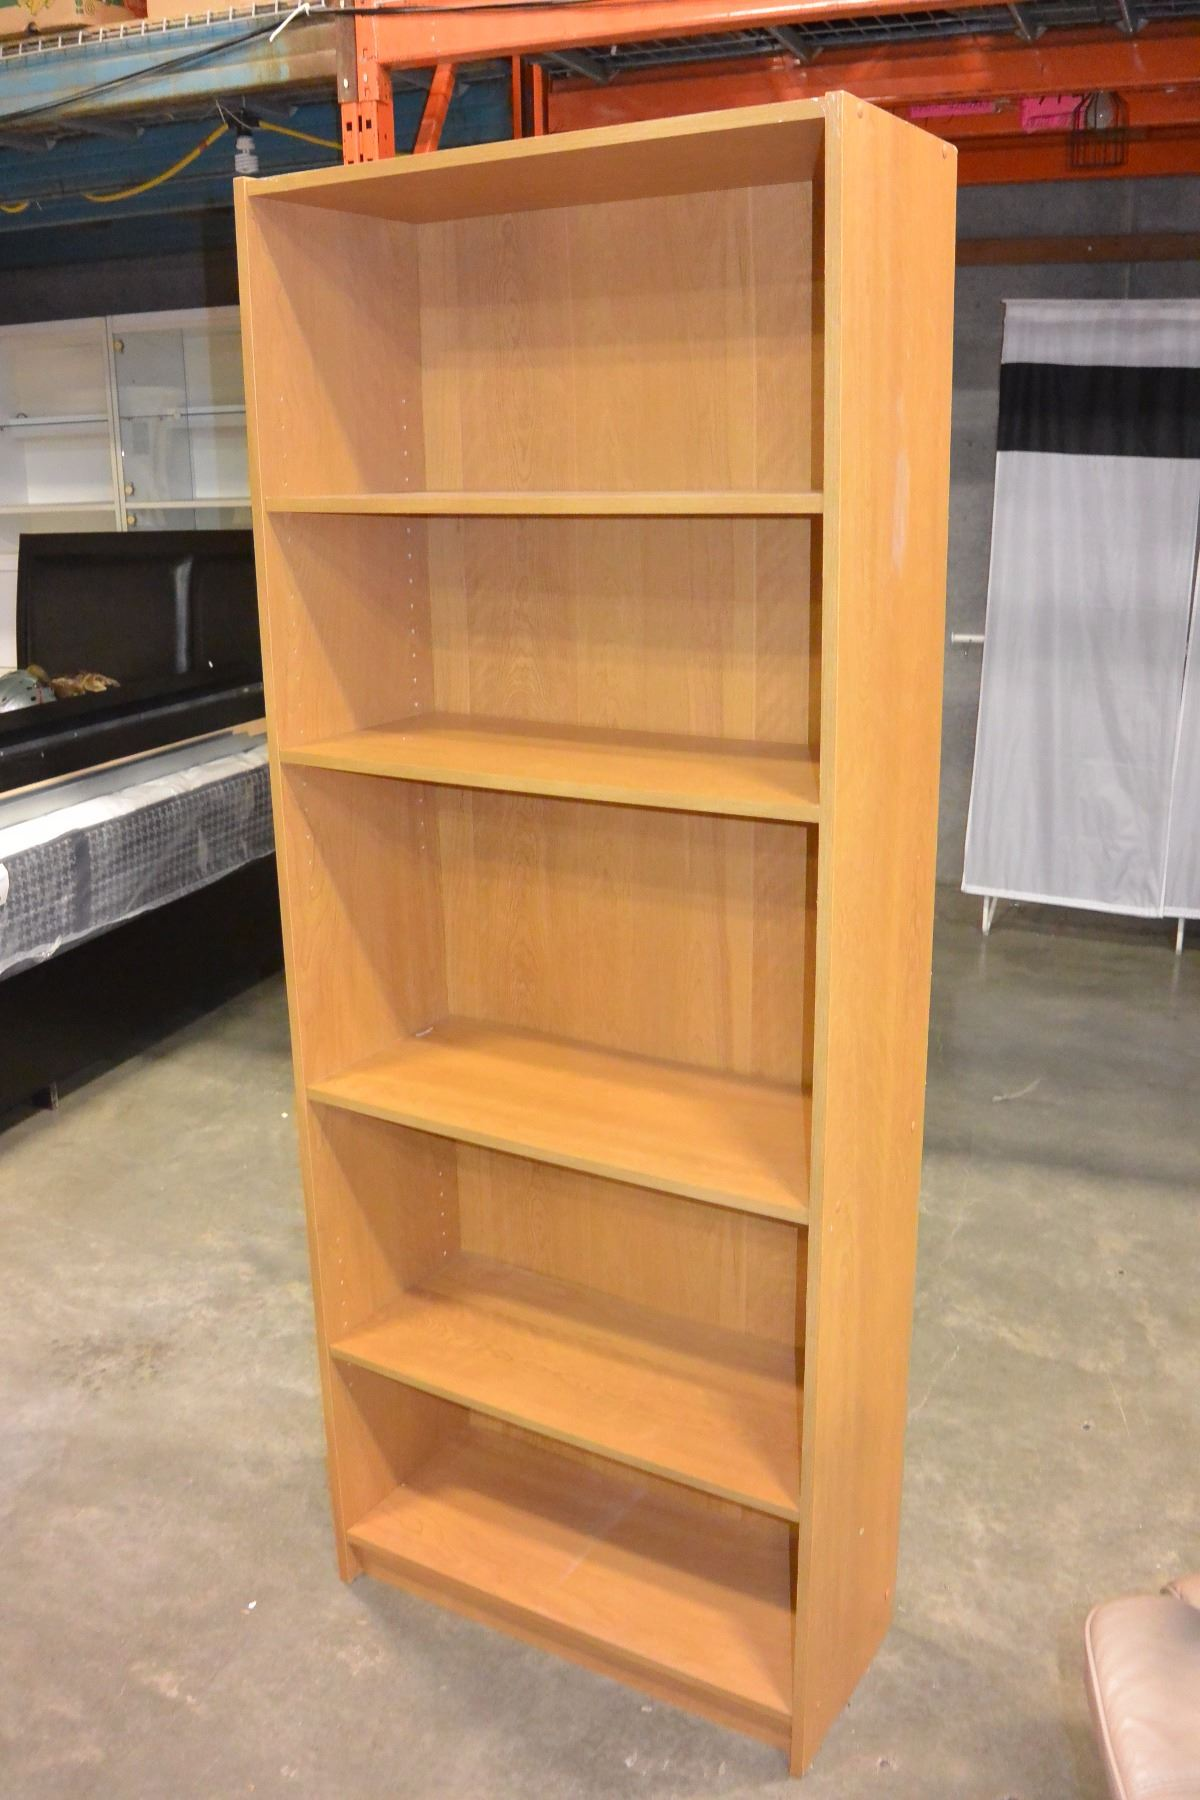 Image 2 6 FOOT MAPLE BOOKSHELF